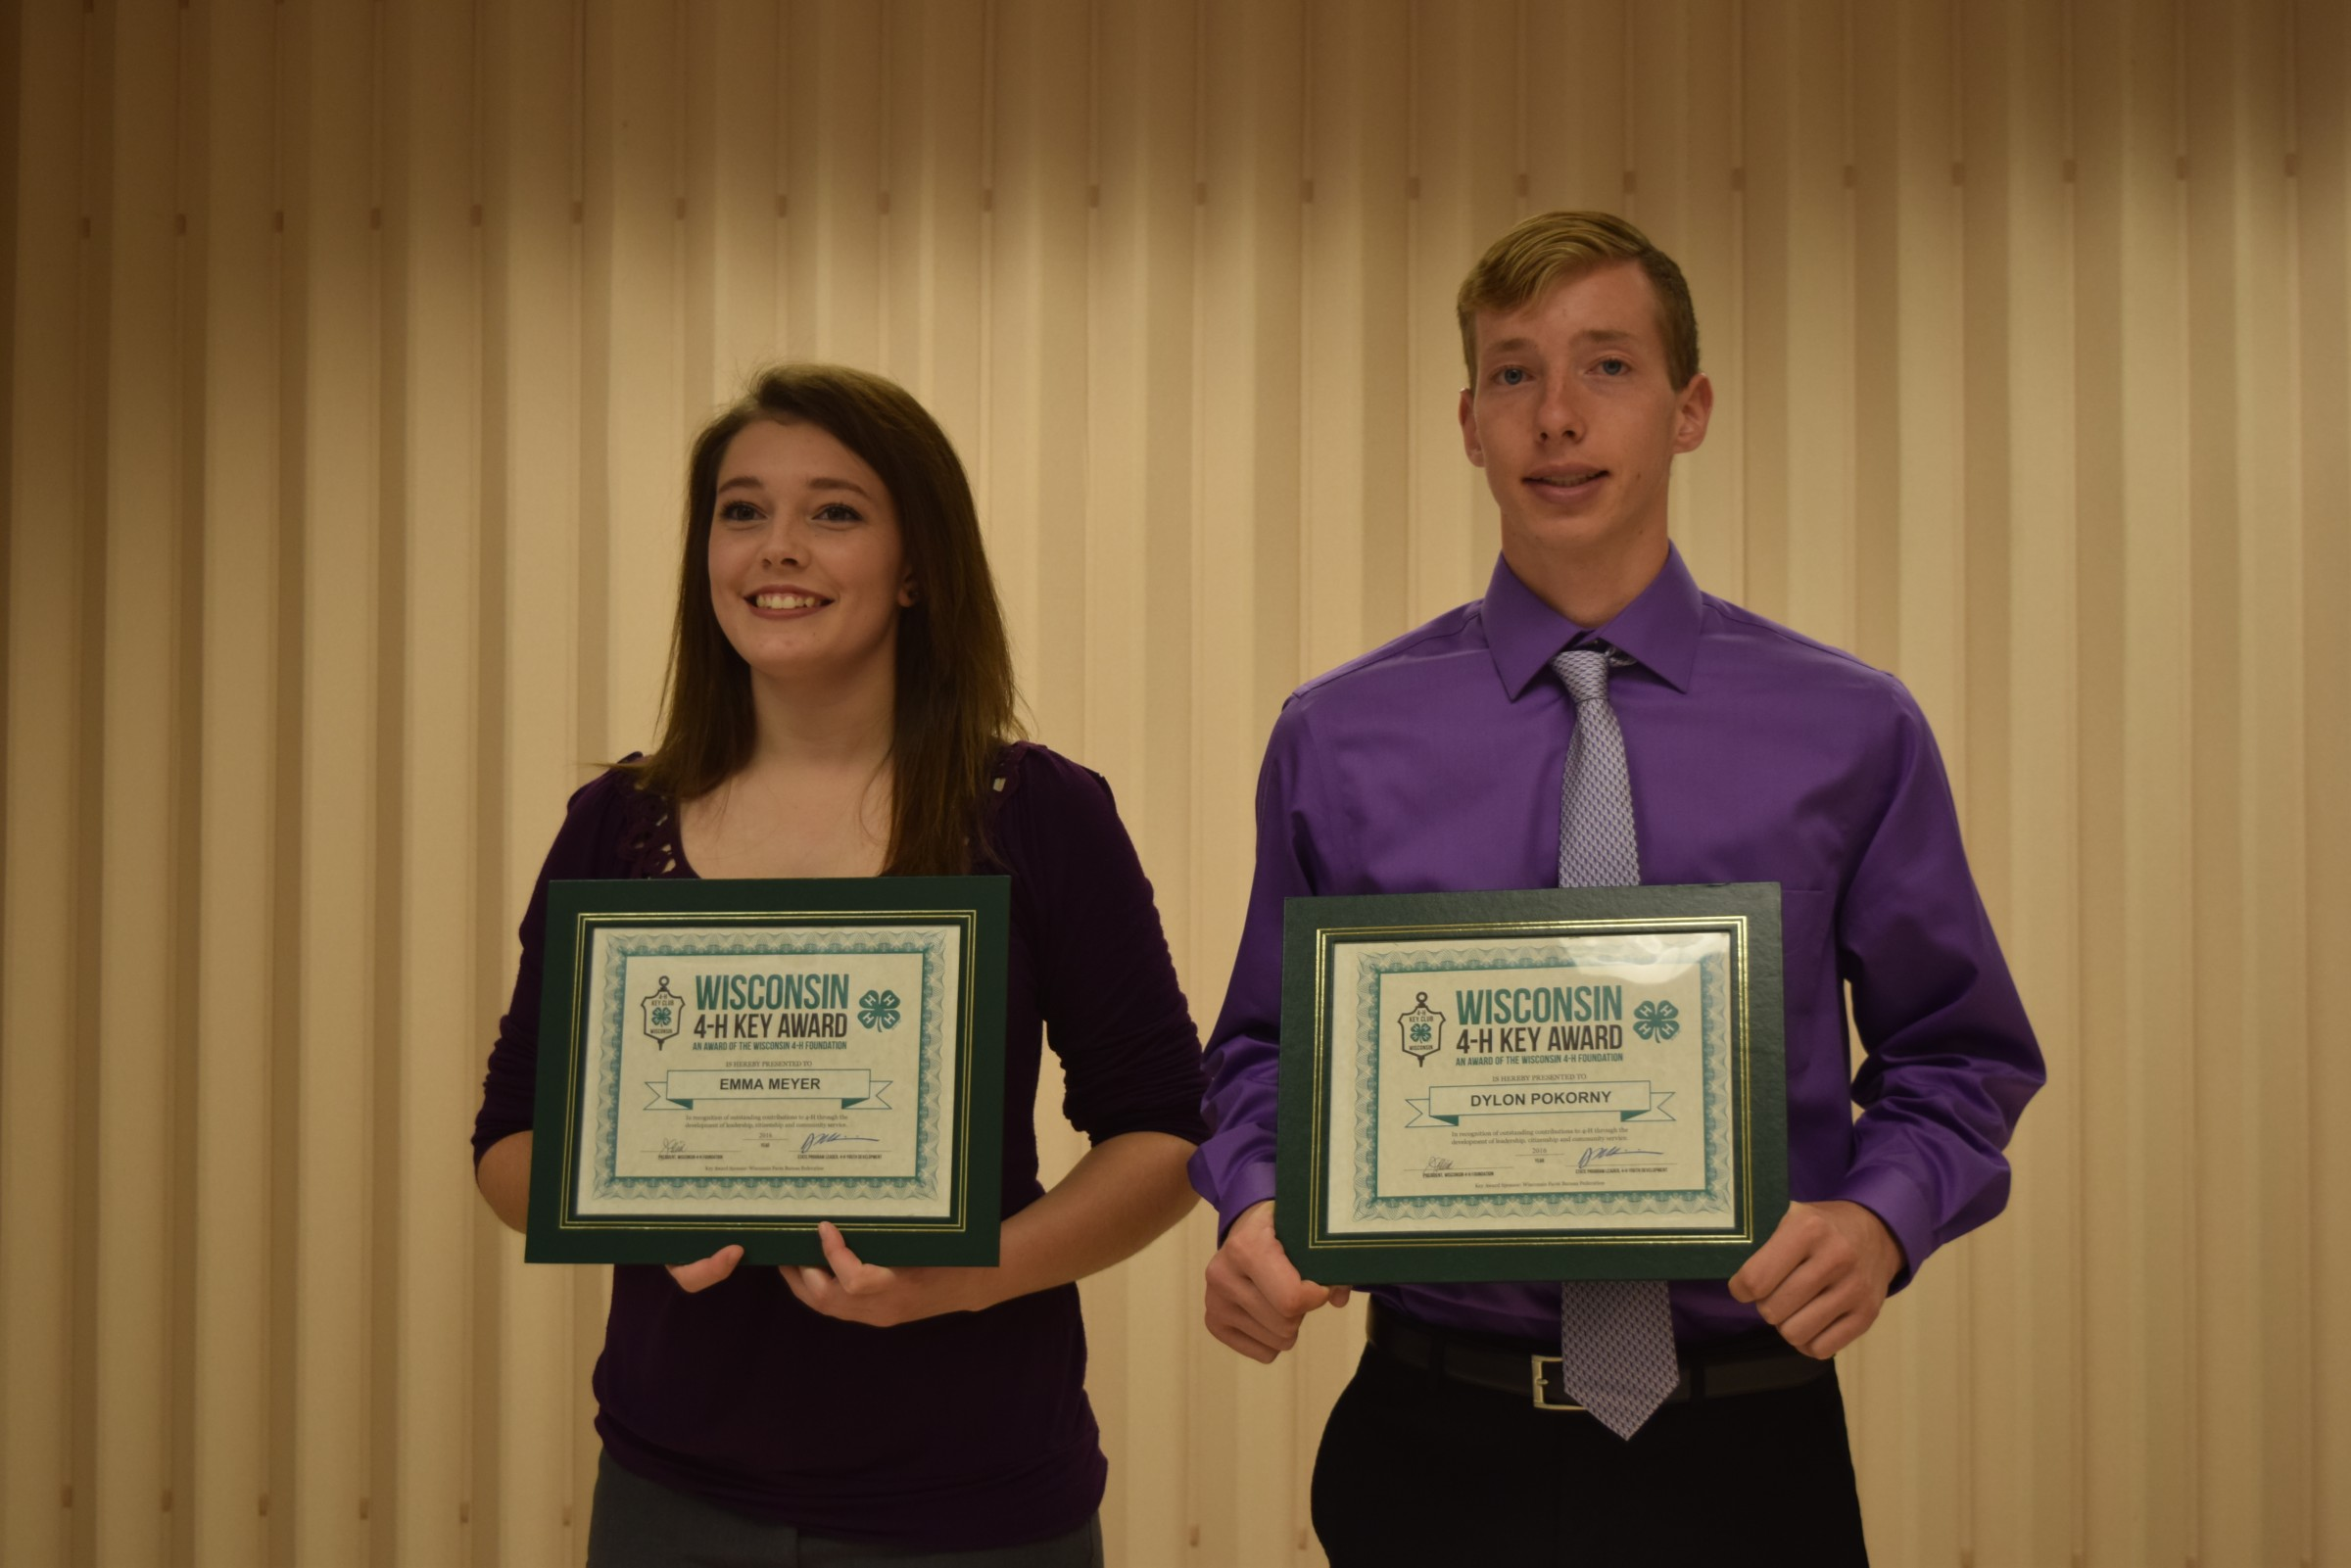 Two of the Wisconsin 4-H Key Award recipients, Emma Meyer and Dylon Pokorny